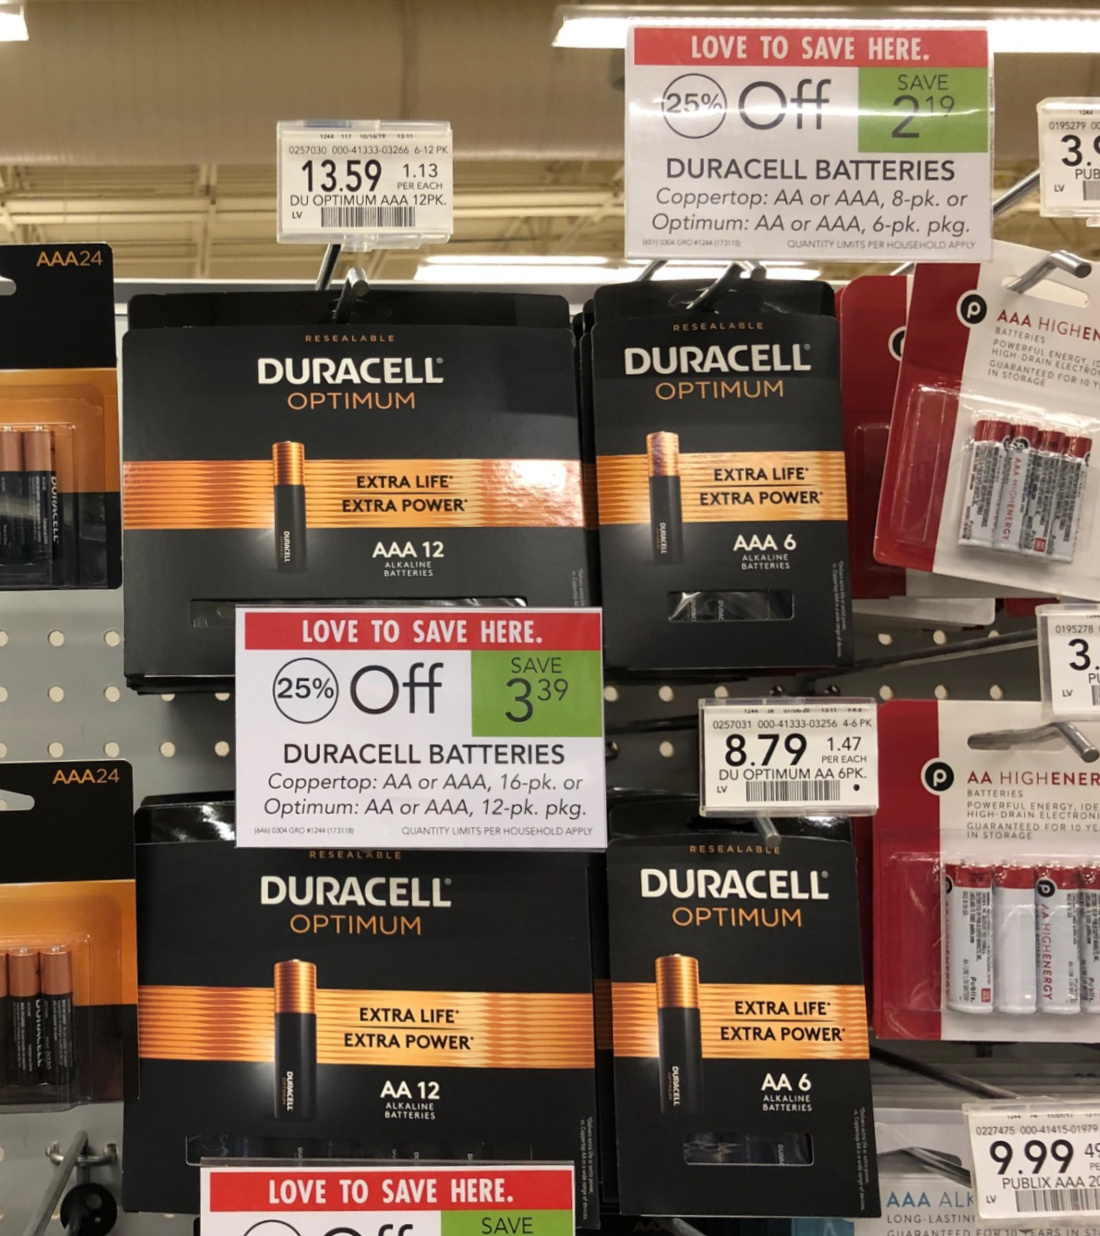 Duracell Optimum Batteries As Low As $2.29 (Regular Price $8.79!) on I Heart Publix